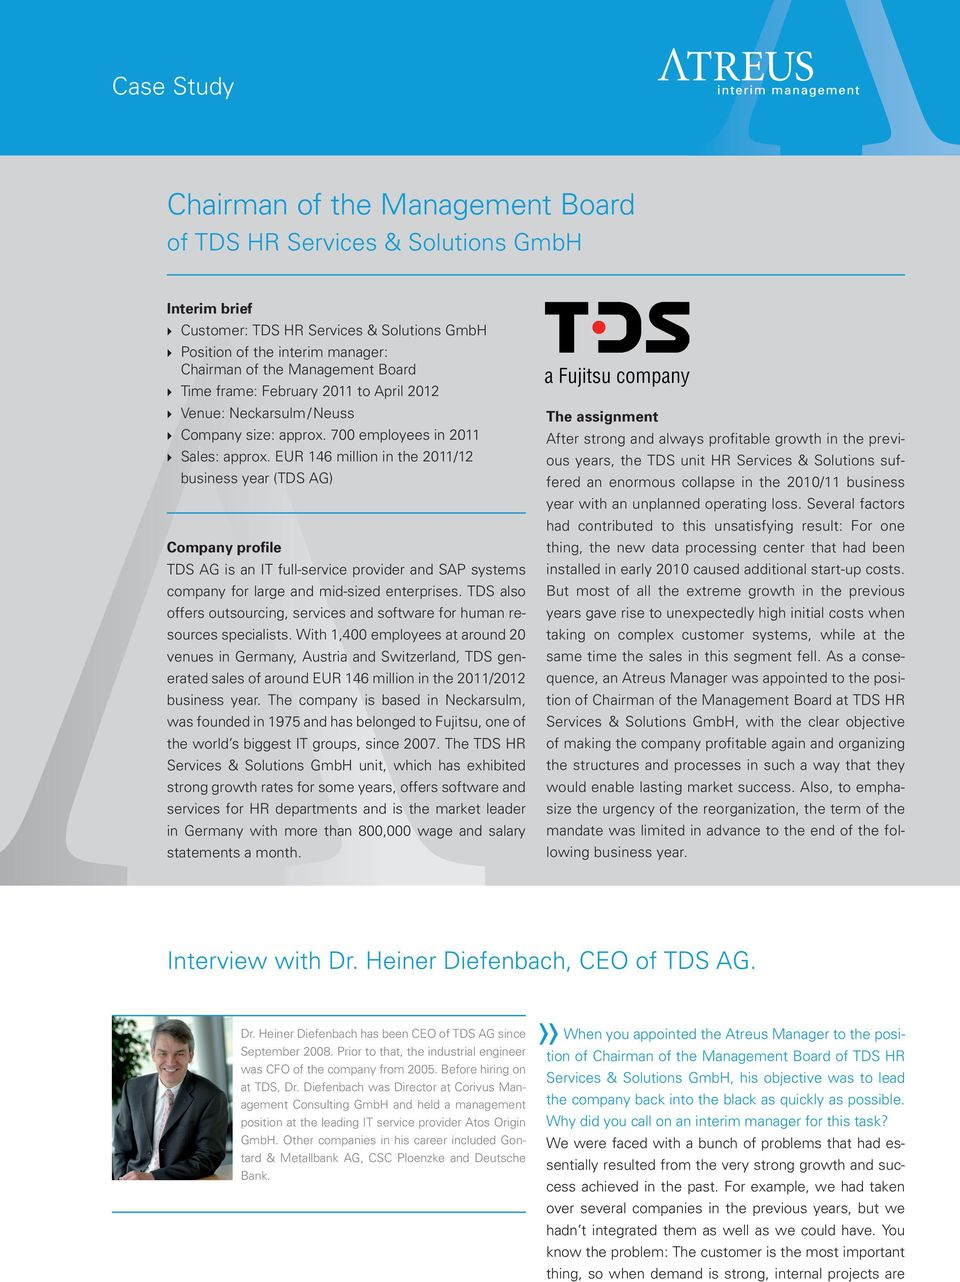 EUR 146 million in the 2011/12 business year (TDS AG) Company profile TDS AG is an IT full-service provider and SAP systems company for large and mid-sized enterprises.